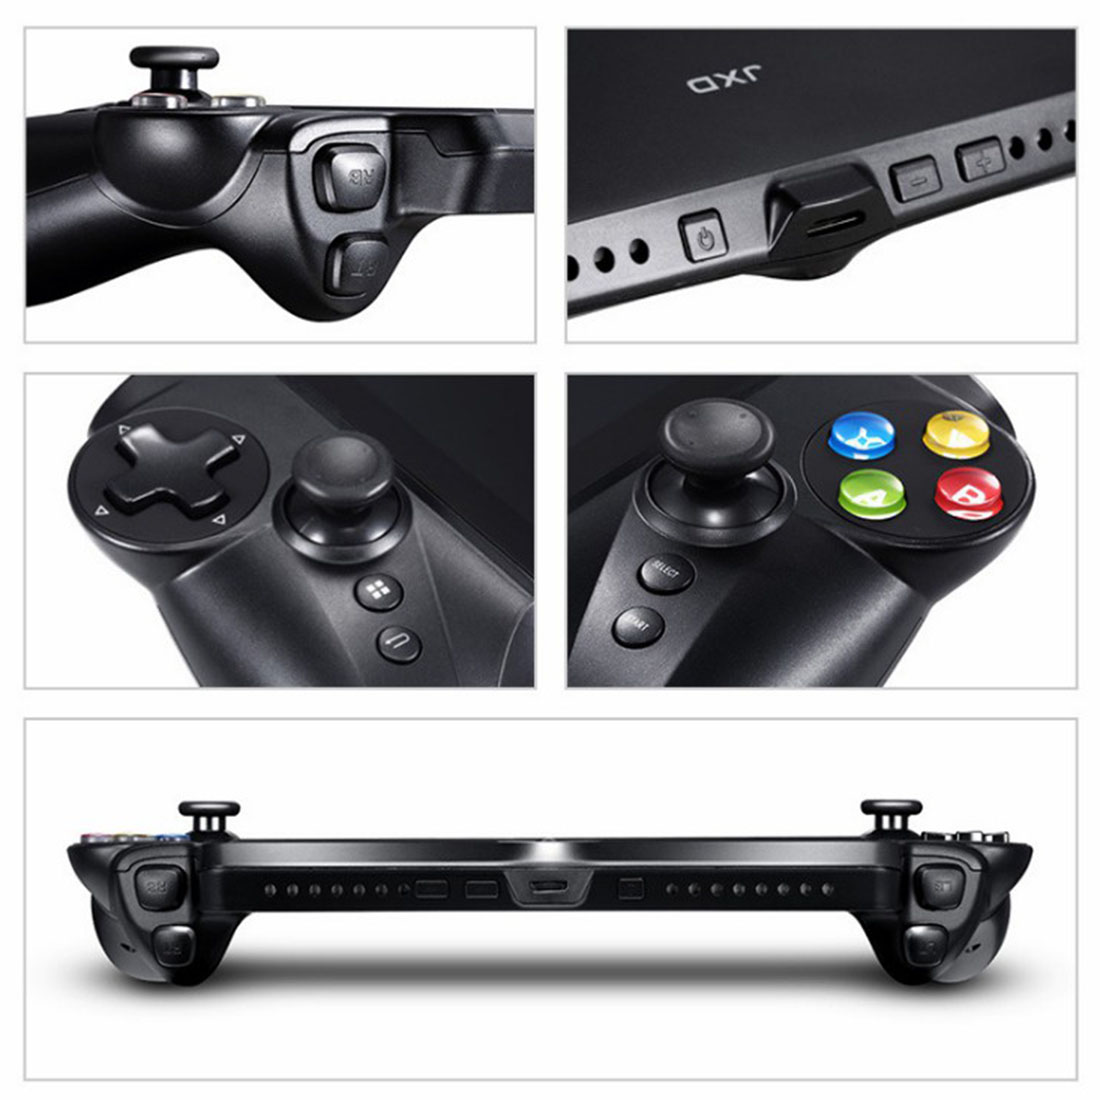 7-Inch Video Game Console Quad Core Gamepad Machine for Android /Tablet /PC